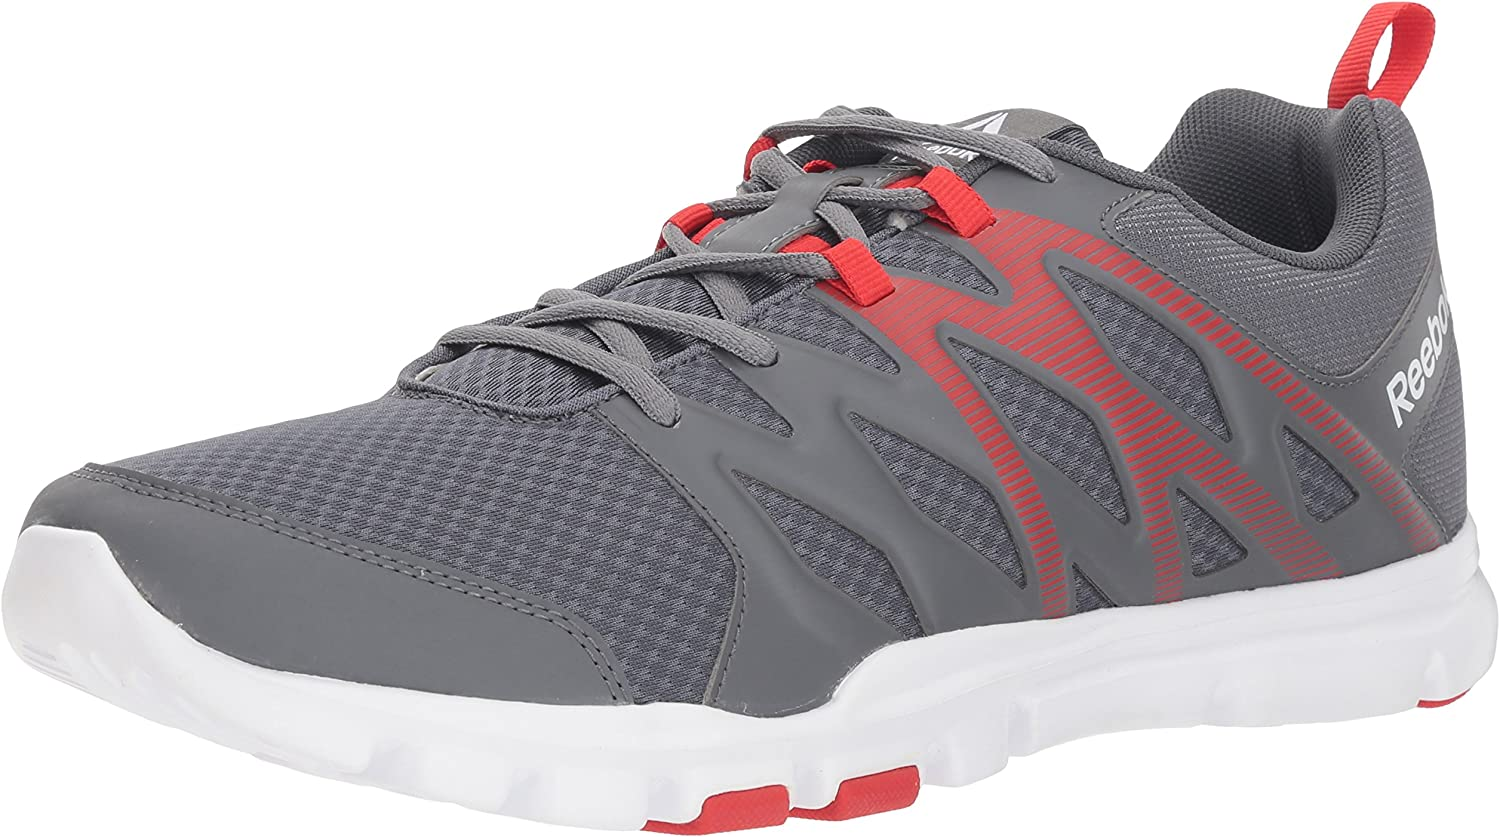 Reebok Men's Yourflex Train SC Sneaker, Alloy Primal Red White Si, 9 M US